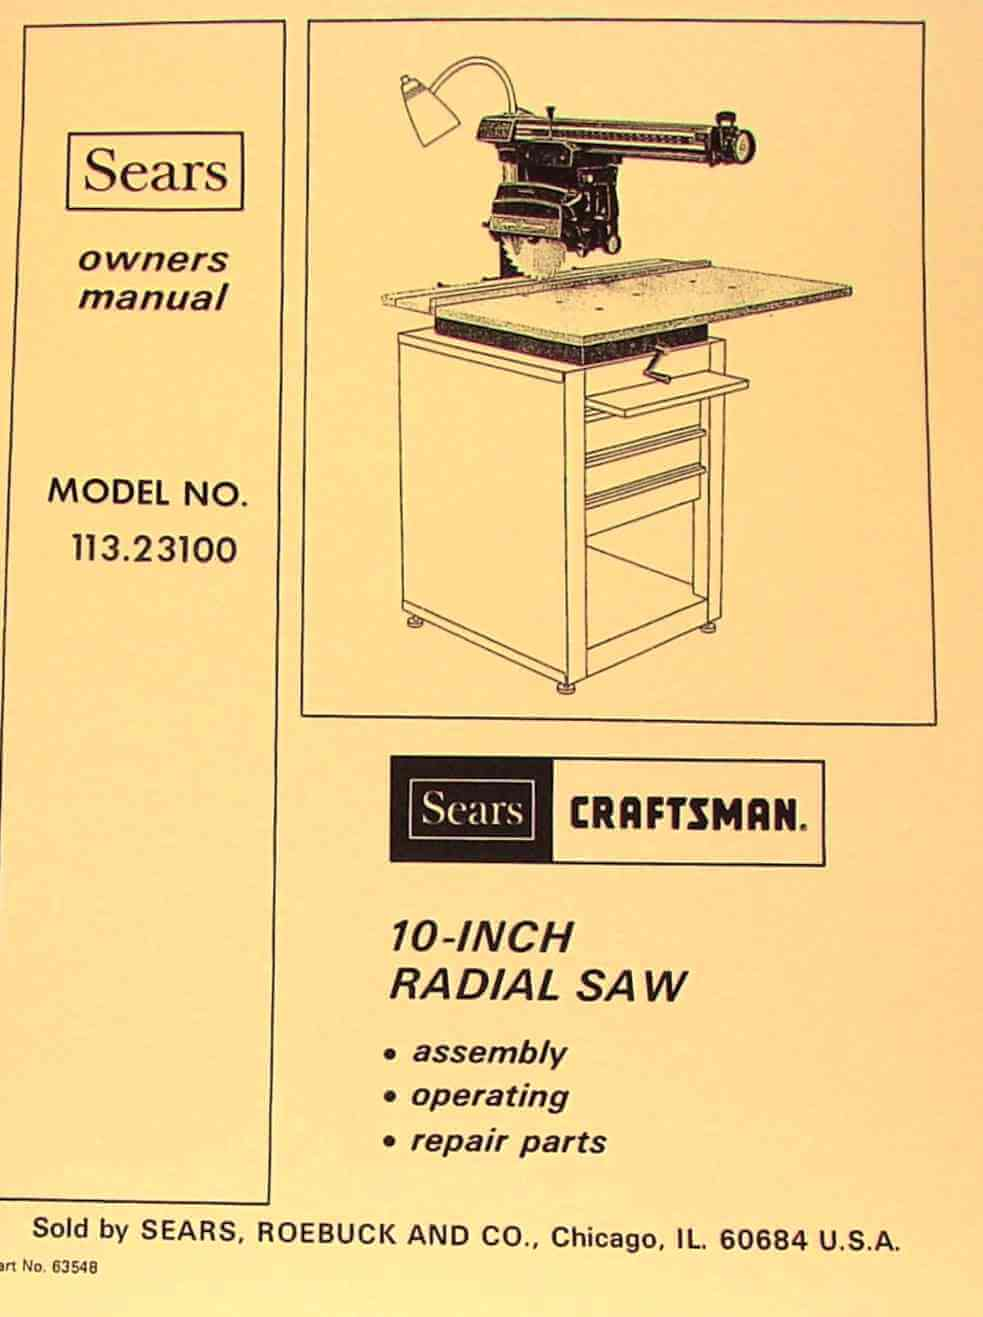 instruction manual for sears radial arm saw